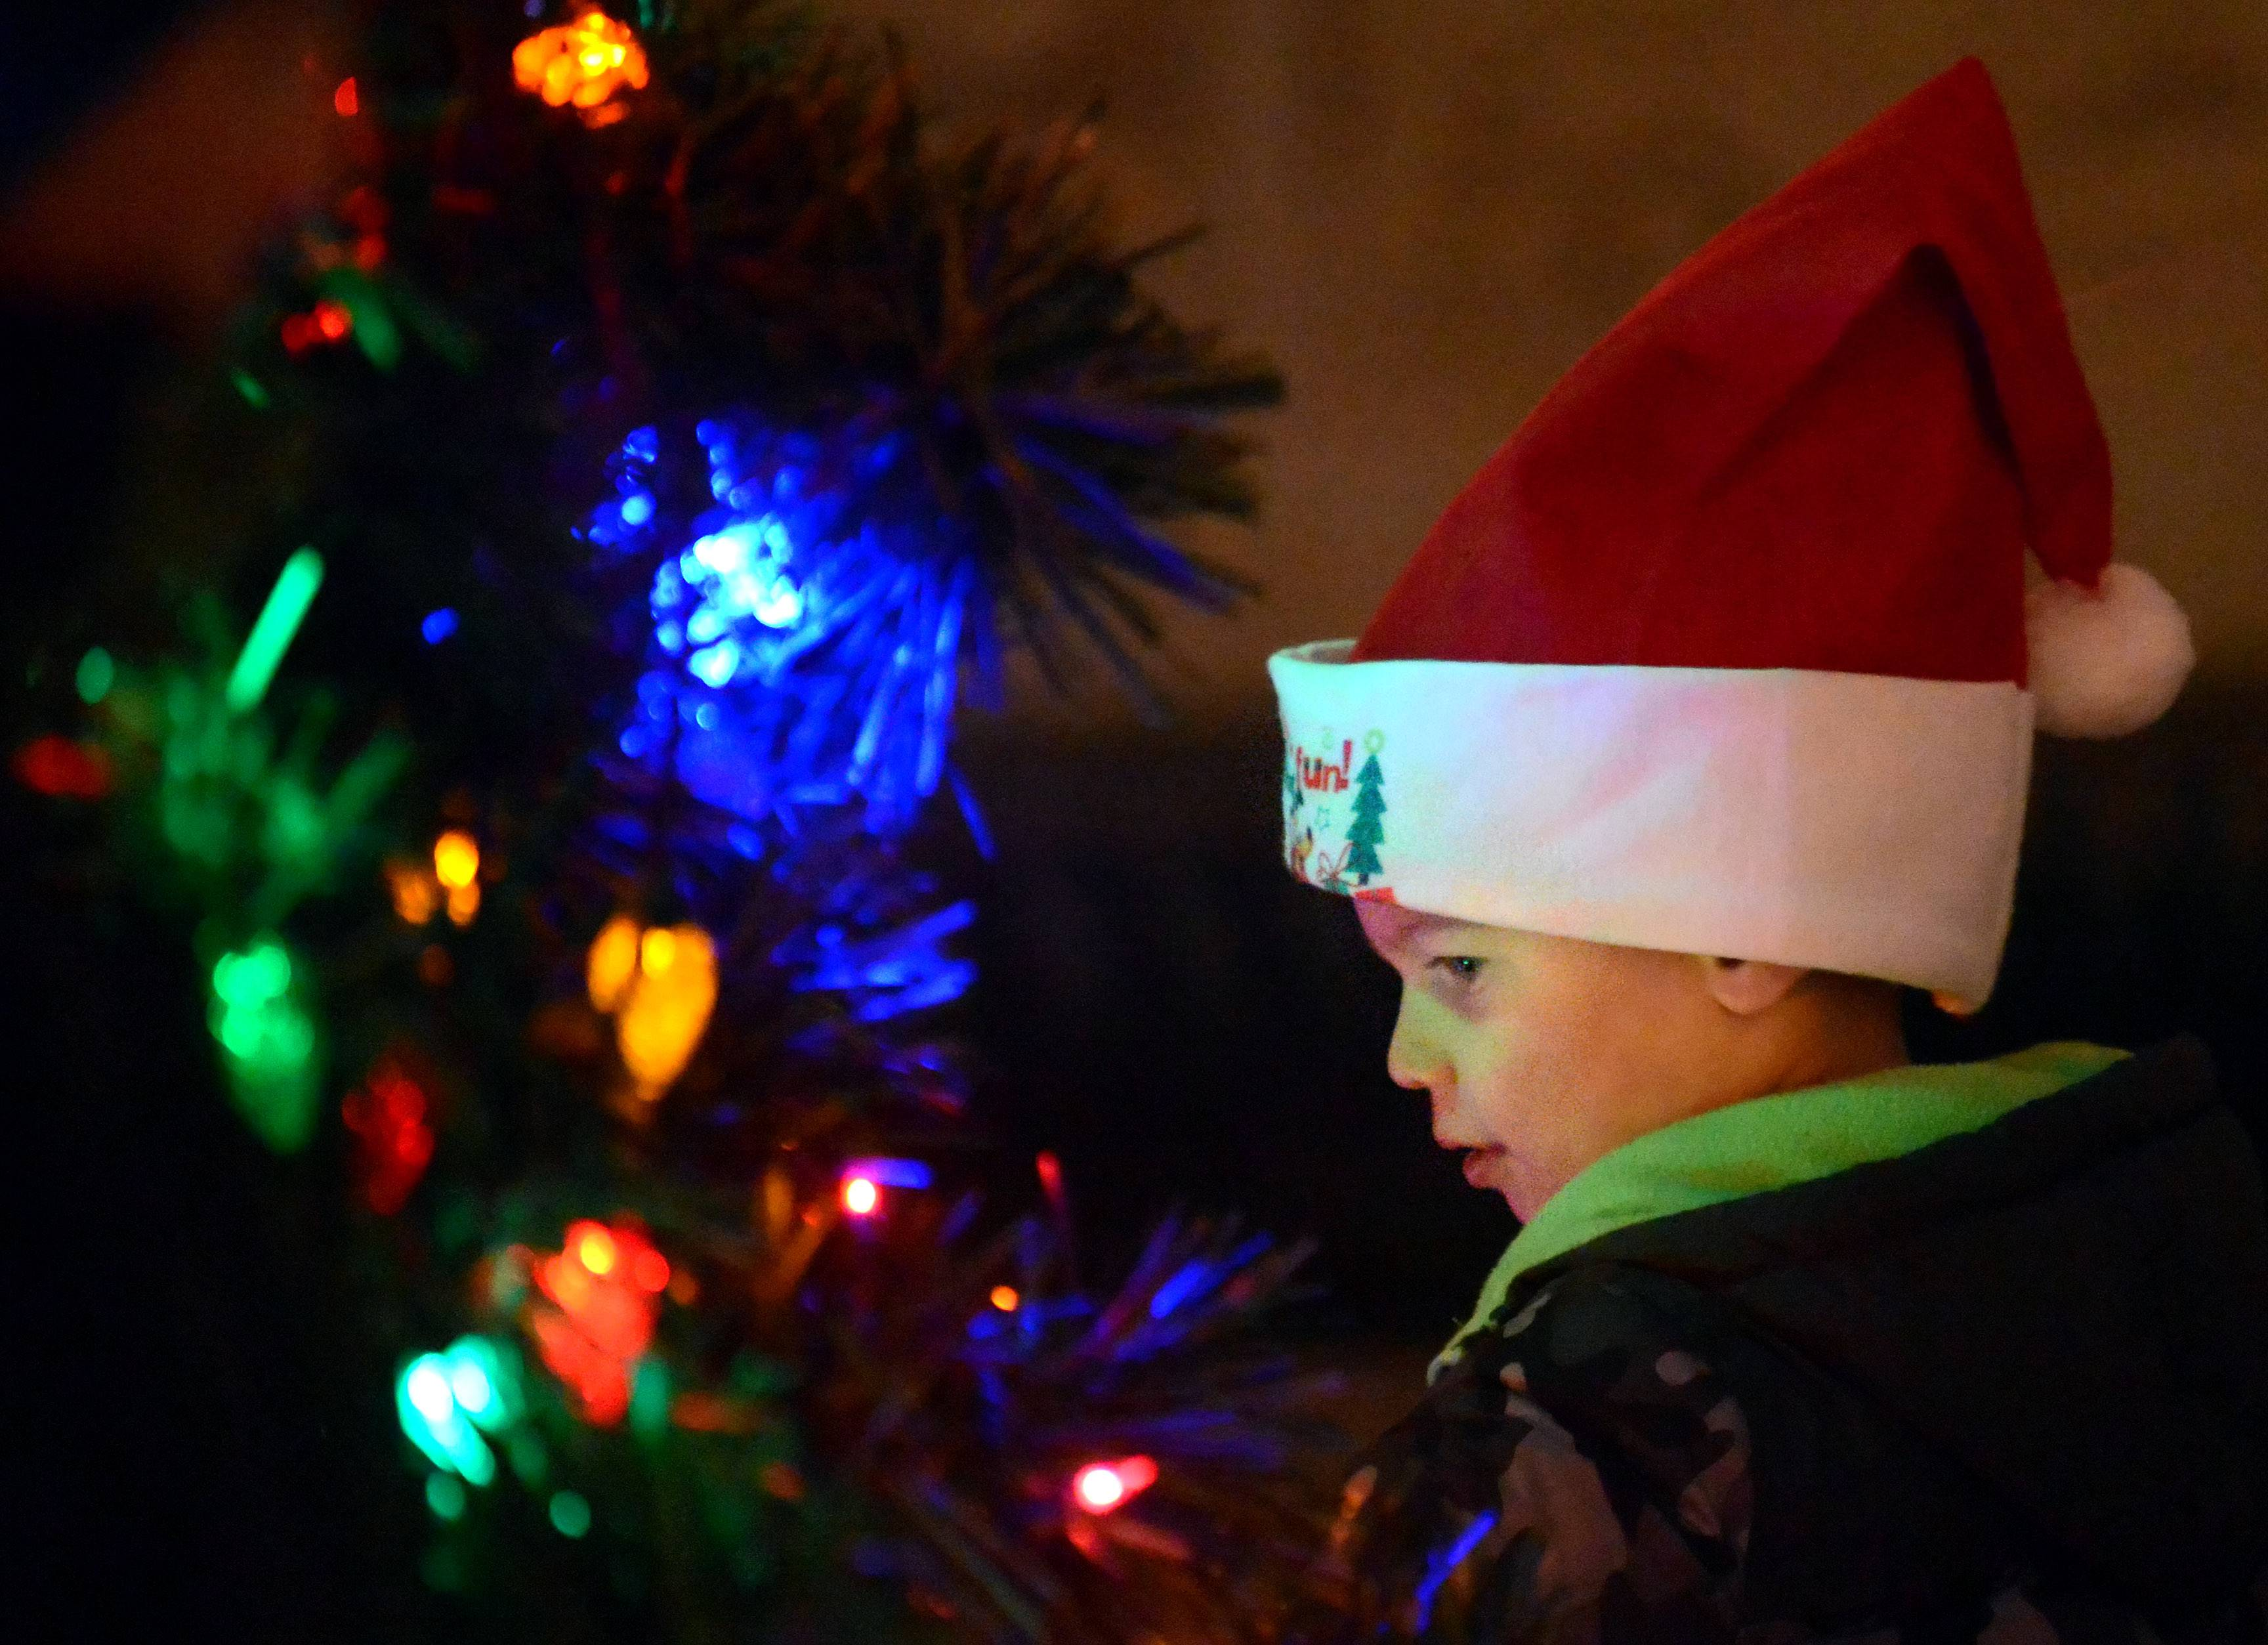 Colton Leonhardt, 2, of St. Charles checks out the Christmas tree near Santa's cottage Friday during the Holiday Homecoming in St. Charles. He came last year to see Santa and brought along little brother, Logan, 1, this year.